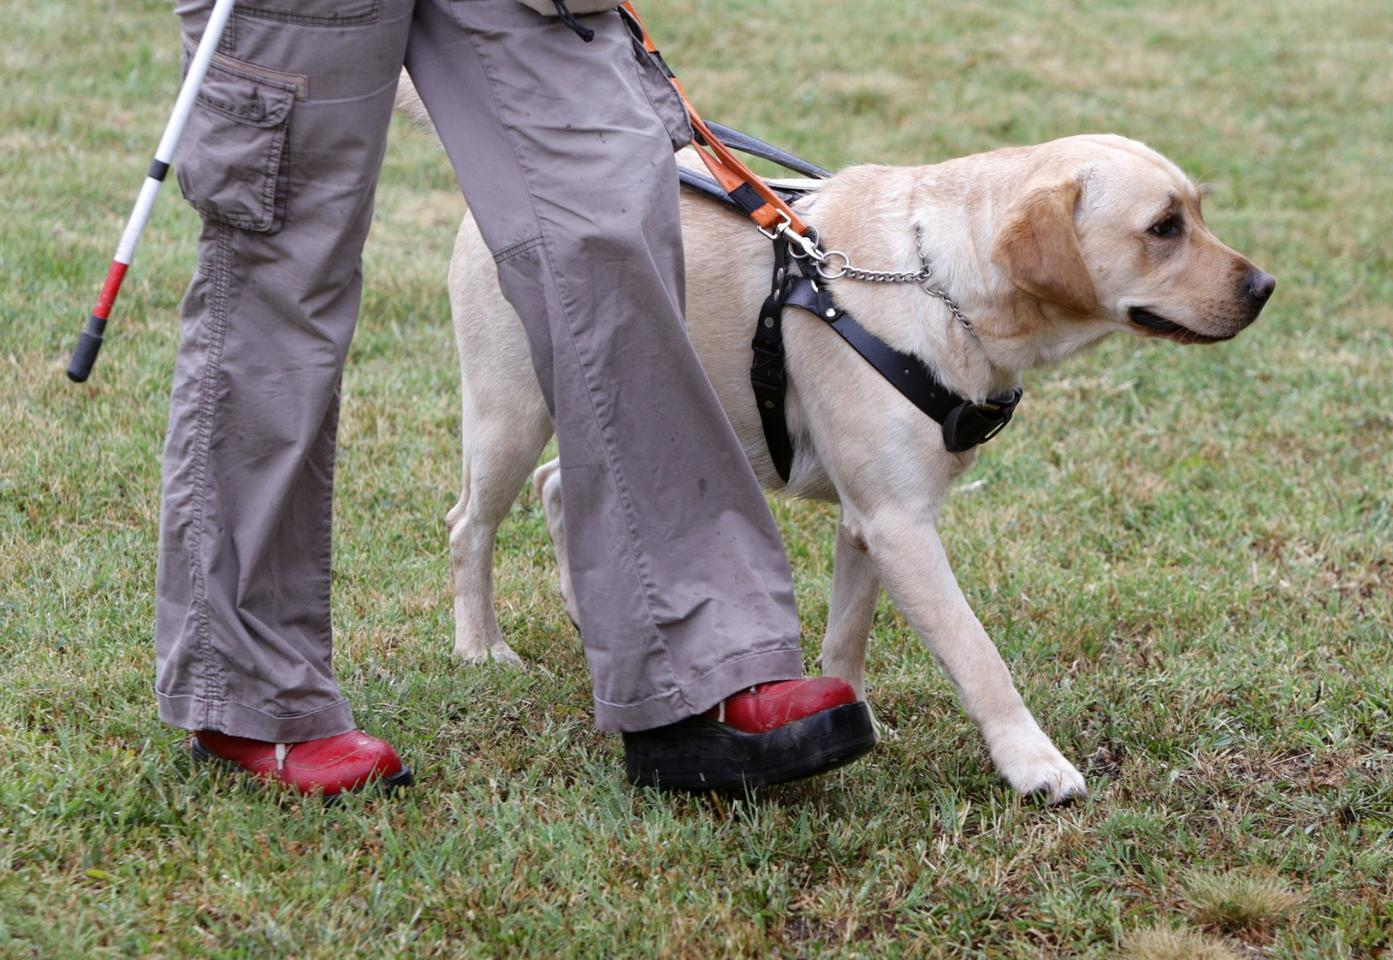 The study looked at dogs trained to assist the disabled, and at ones trained to detect explosives